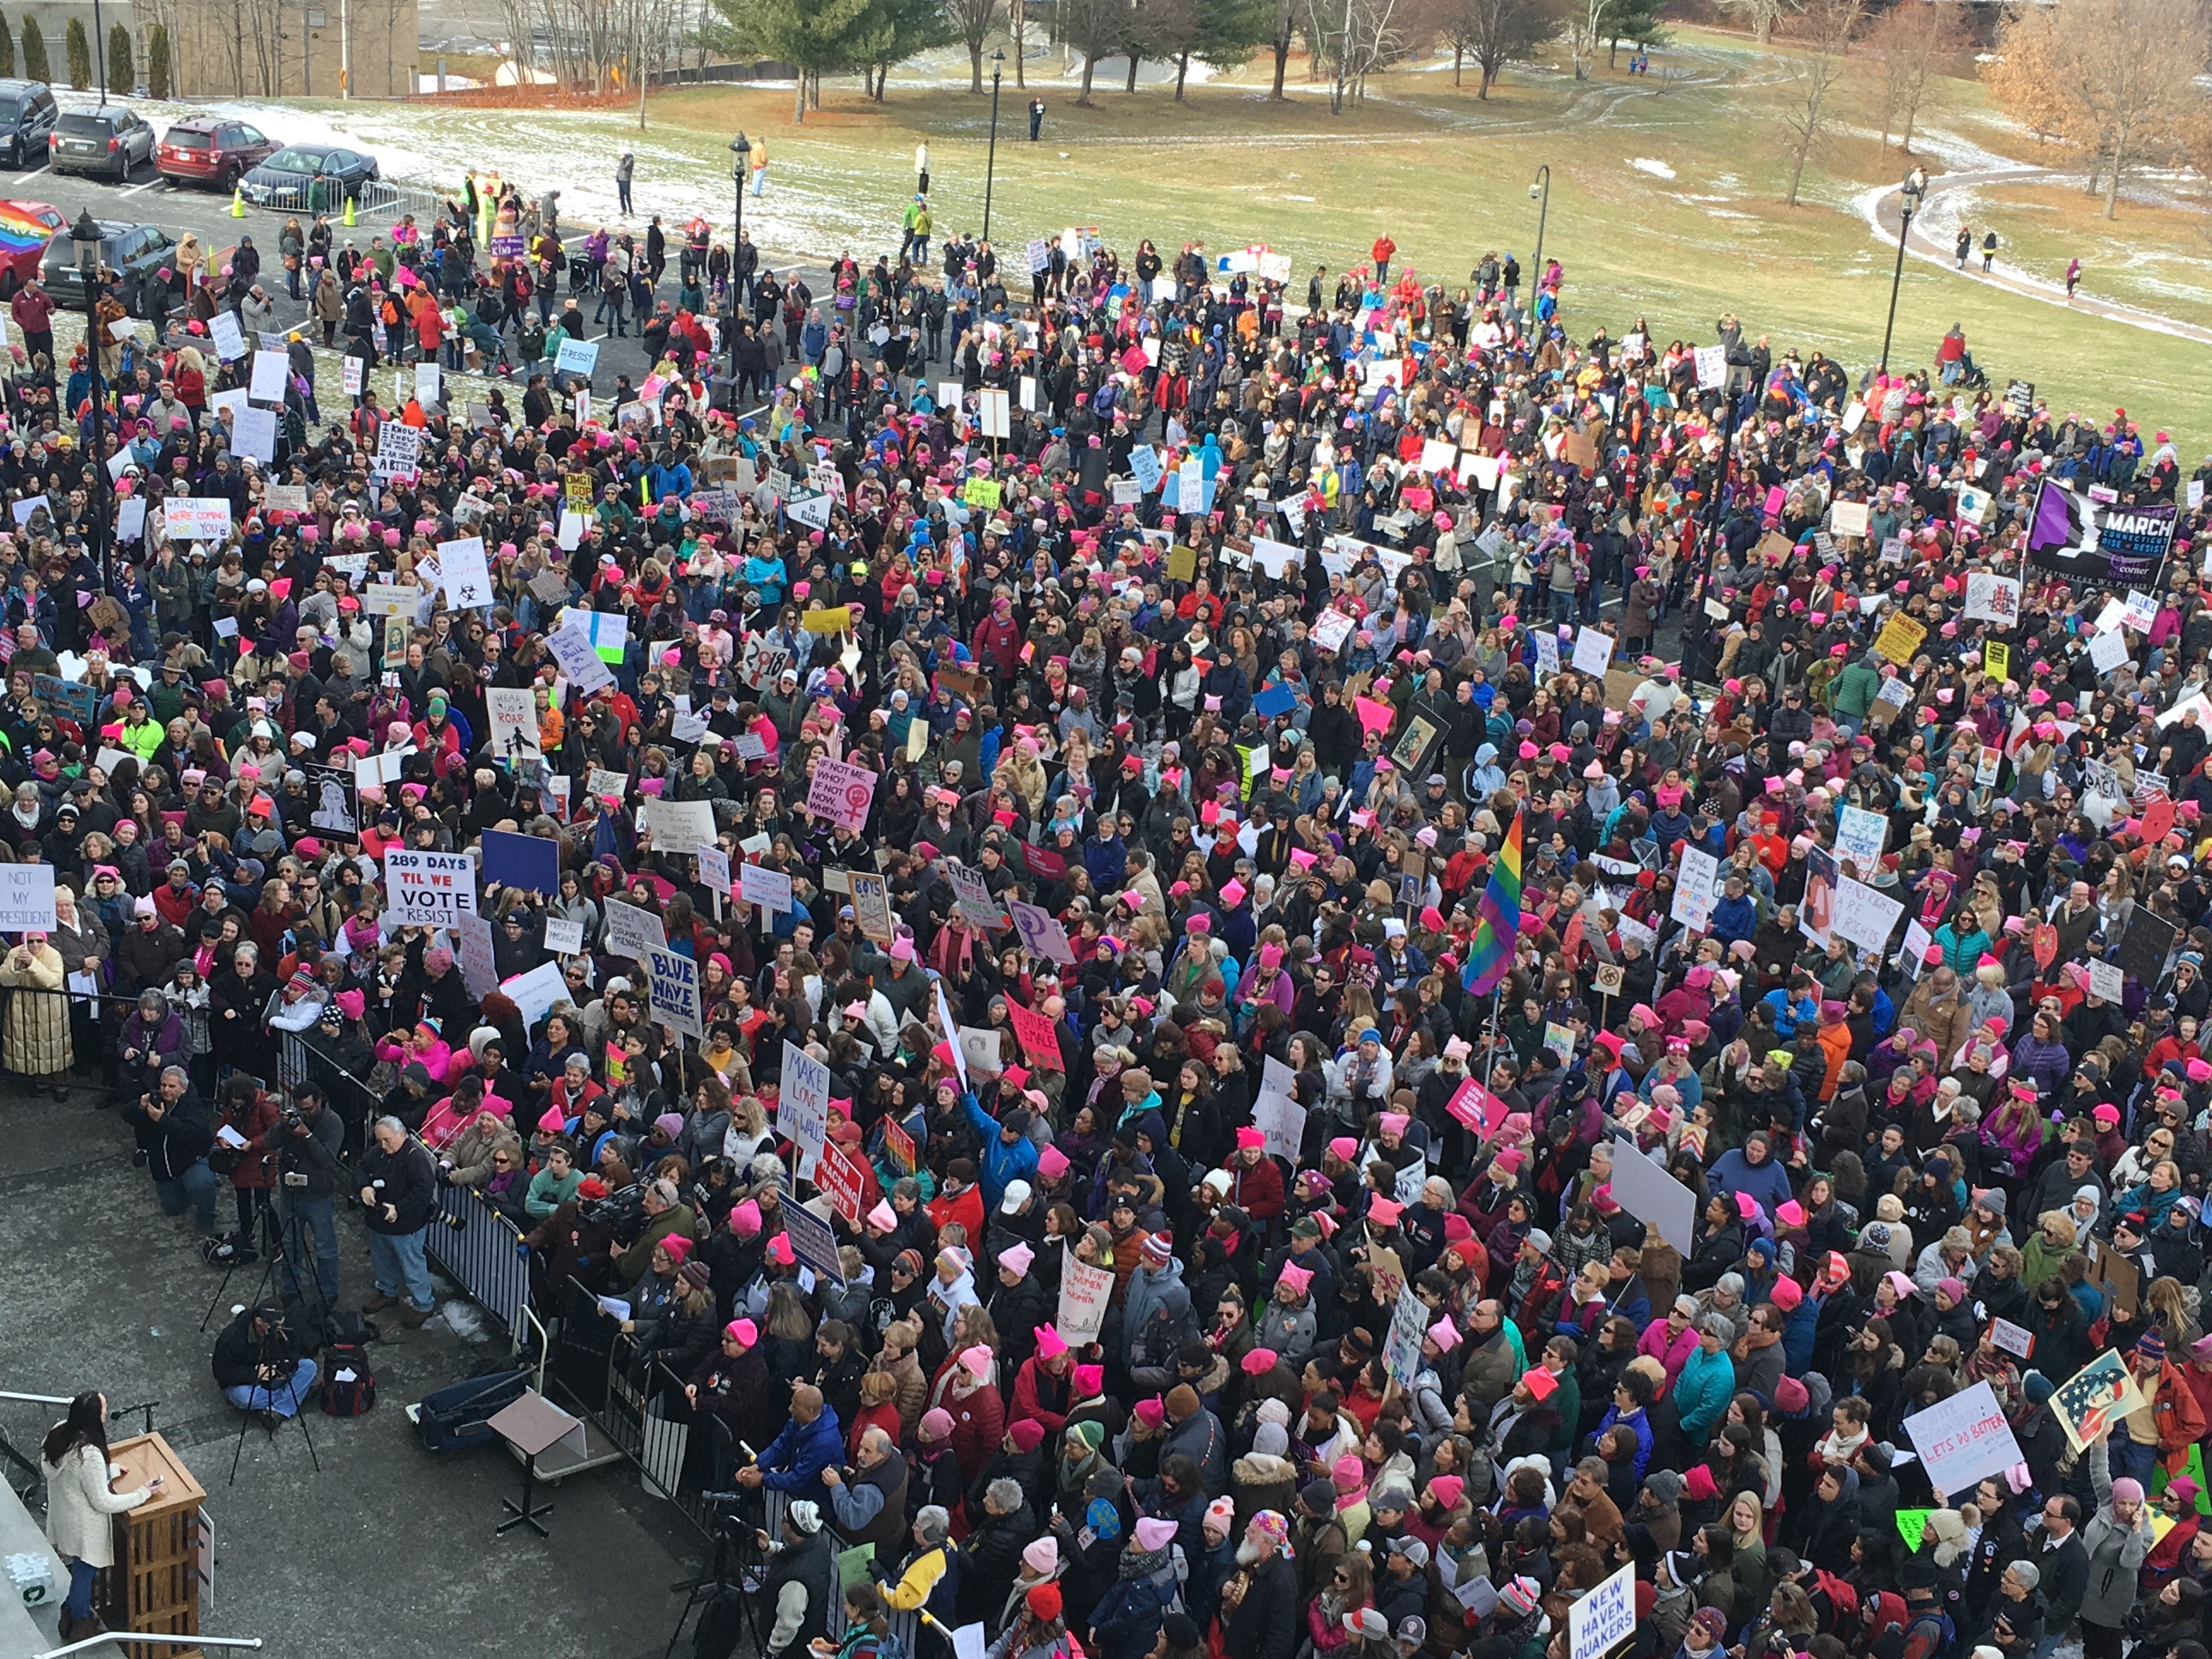 Rally to empower women draws thousands to the Capitol